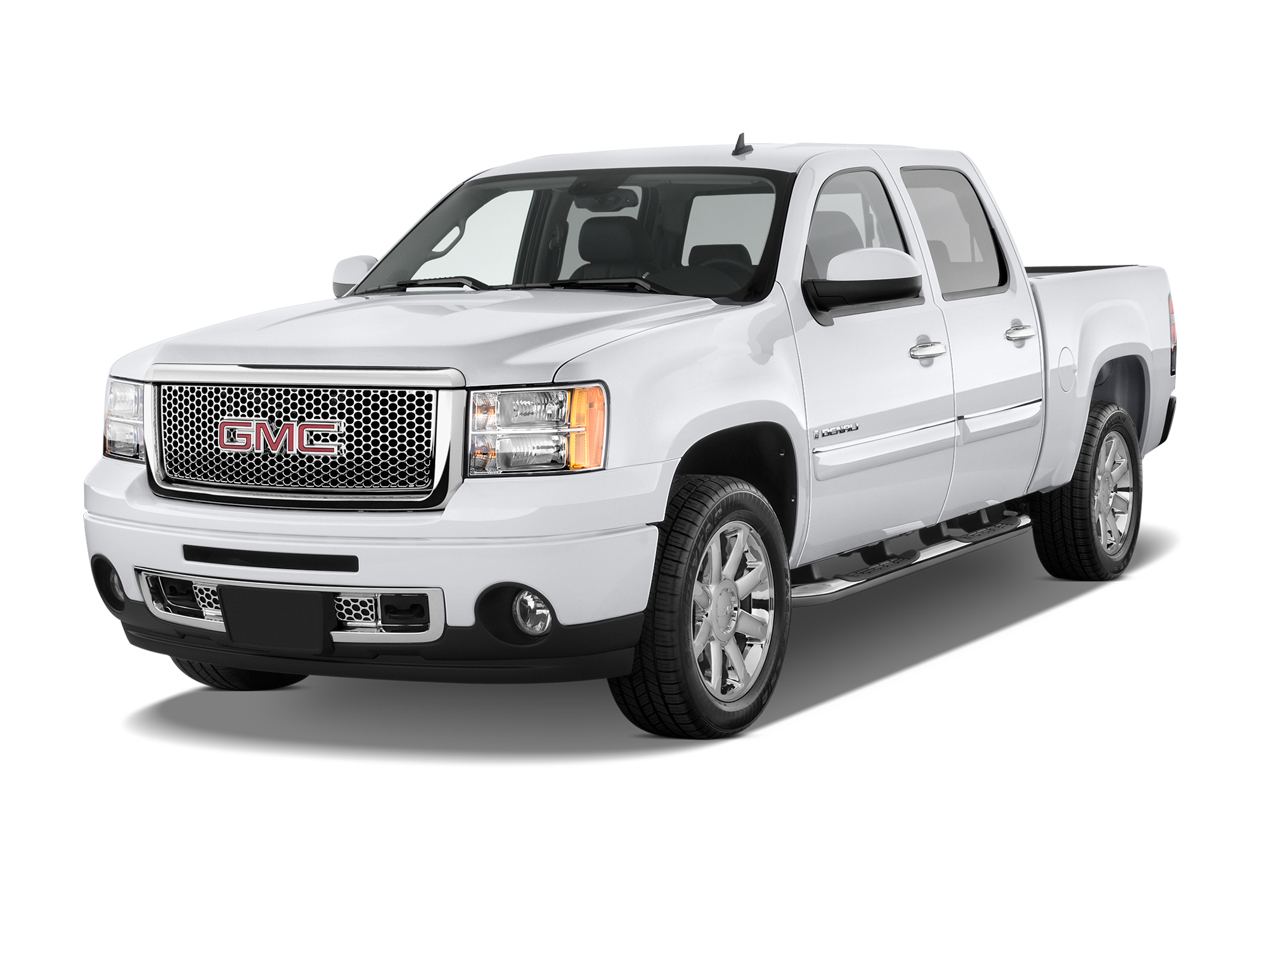 2012 Gmc Sierra 1500 Review Ratings Specs Prices And Photos The Car Connection